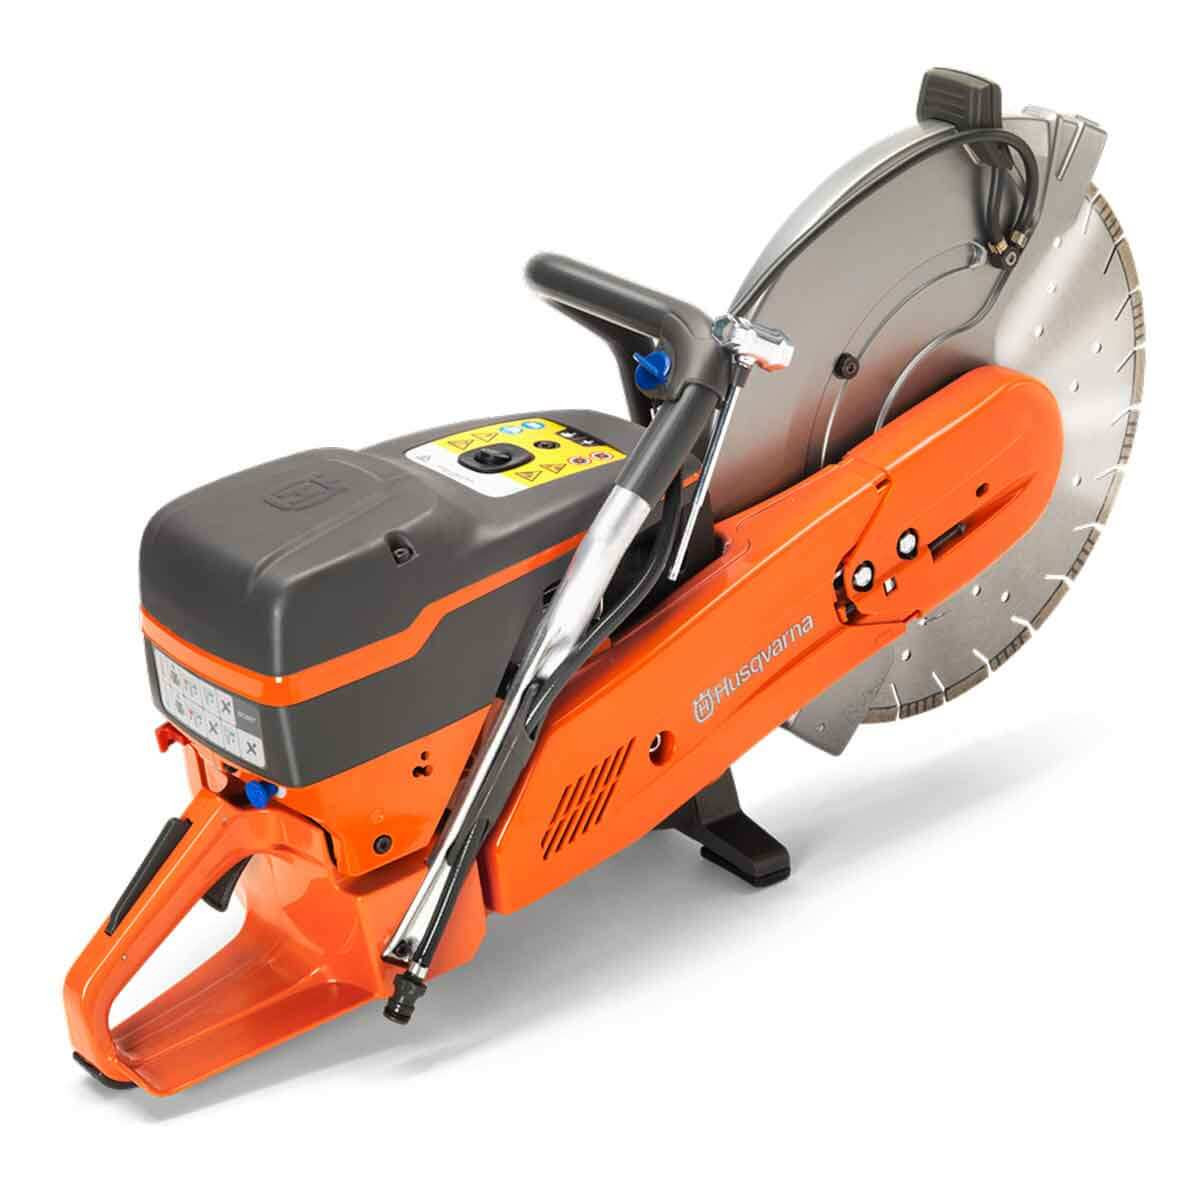 Husqvarna K1260 gas Cut off saw